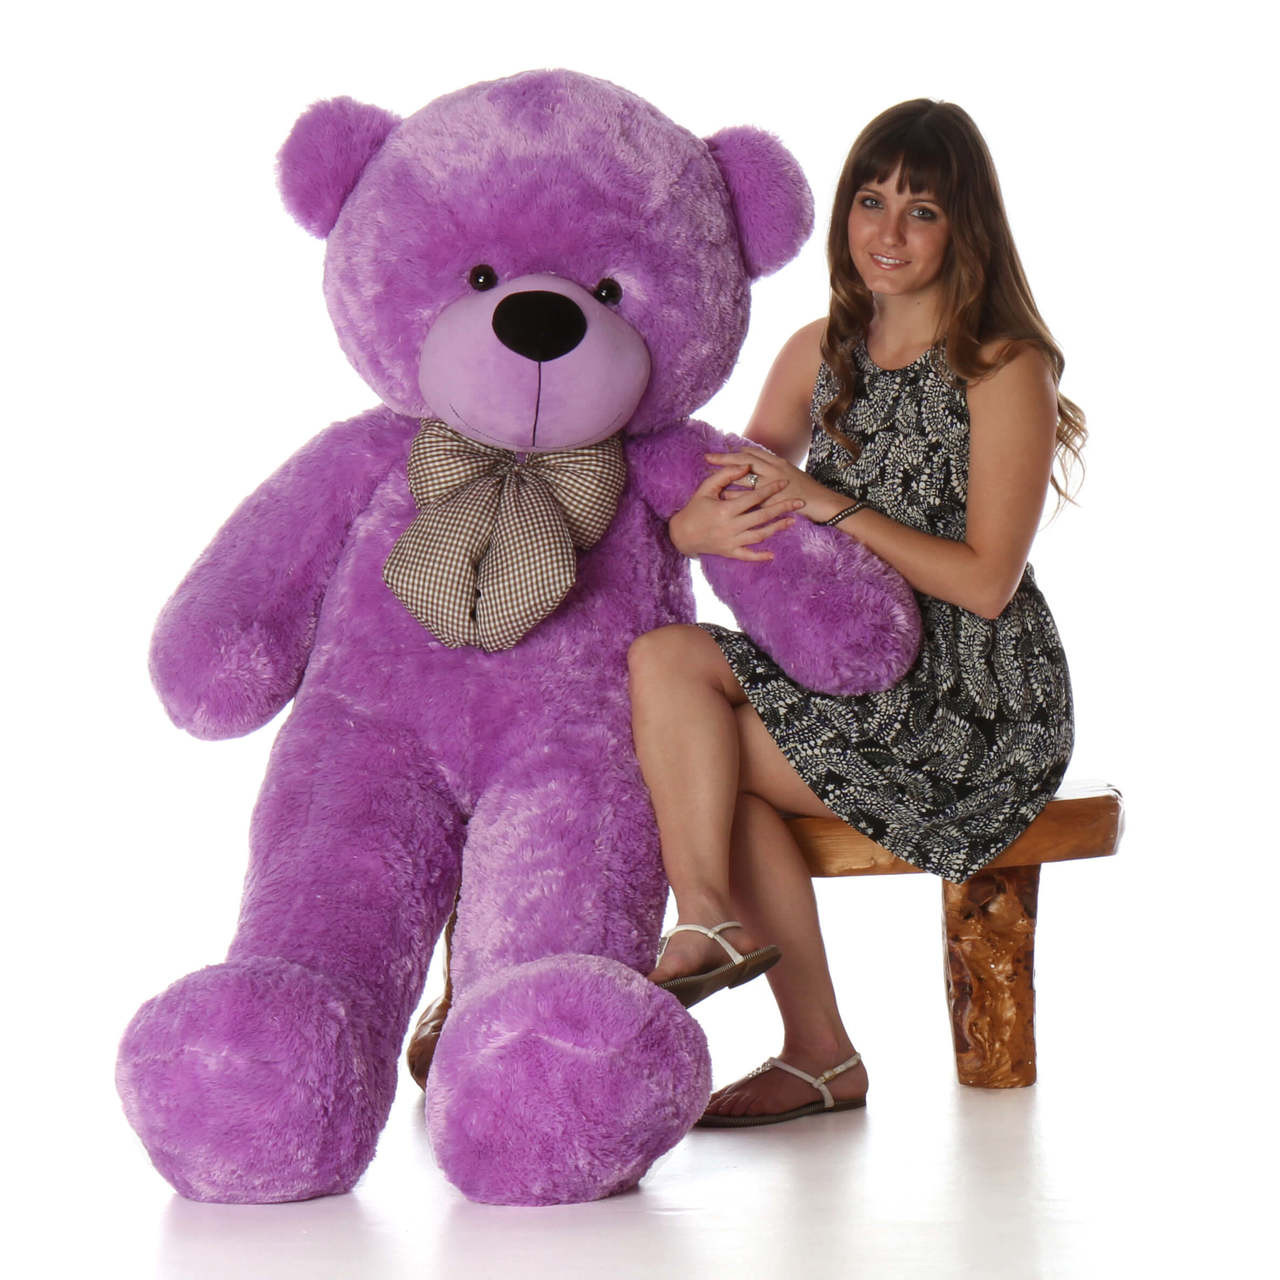 60in_best_selling_Life_Size_Purple_Teddy